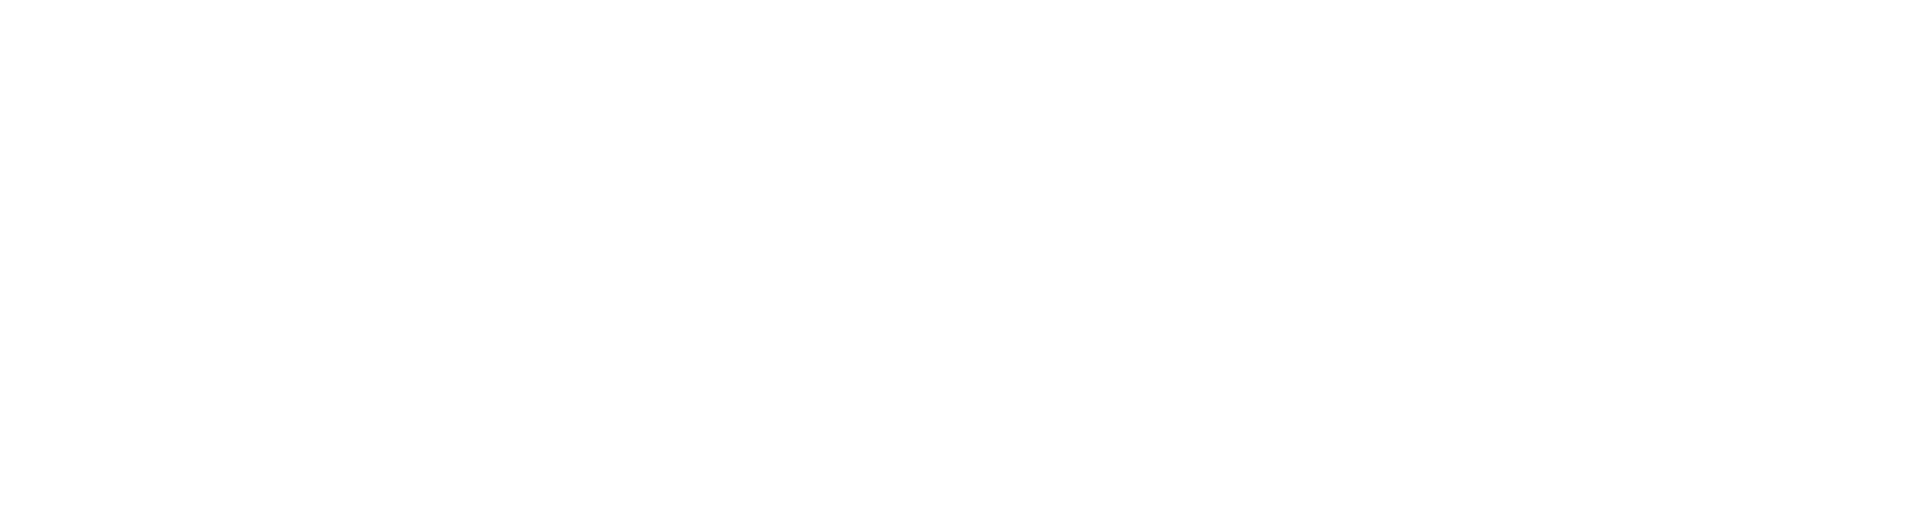 TaskScout Flat Pack Furniture Assembly